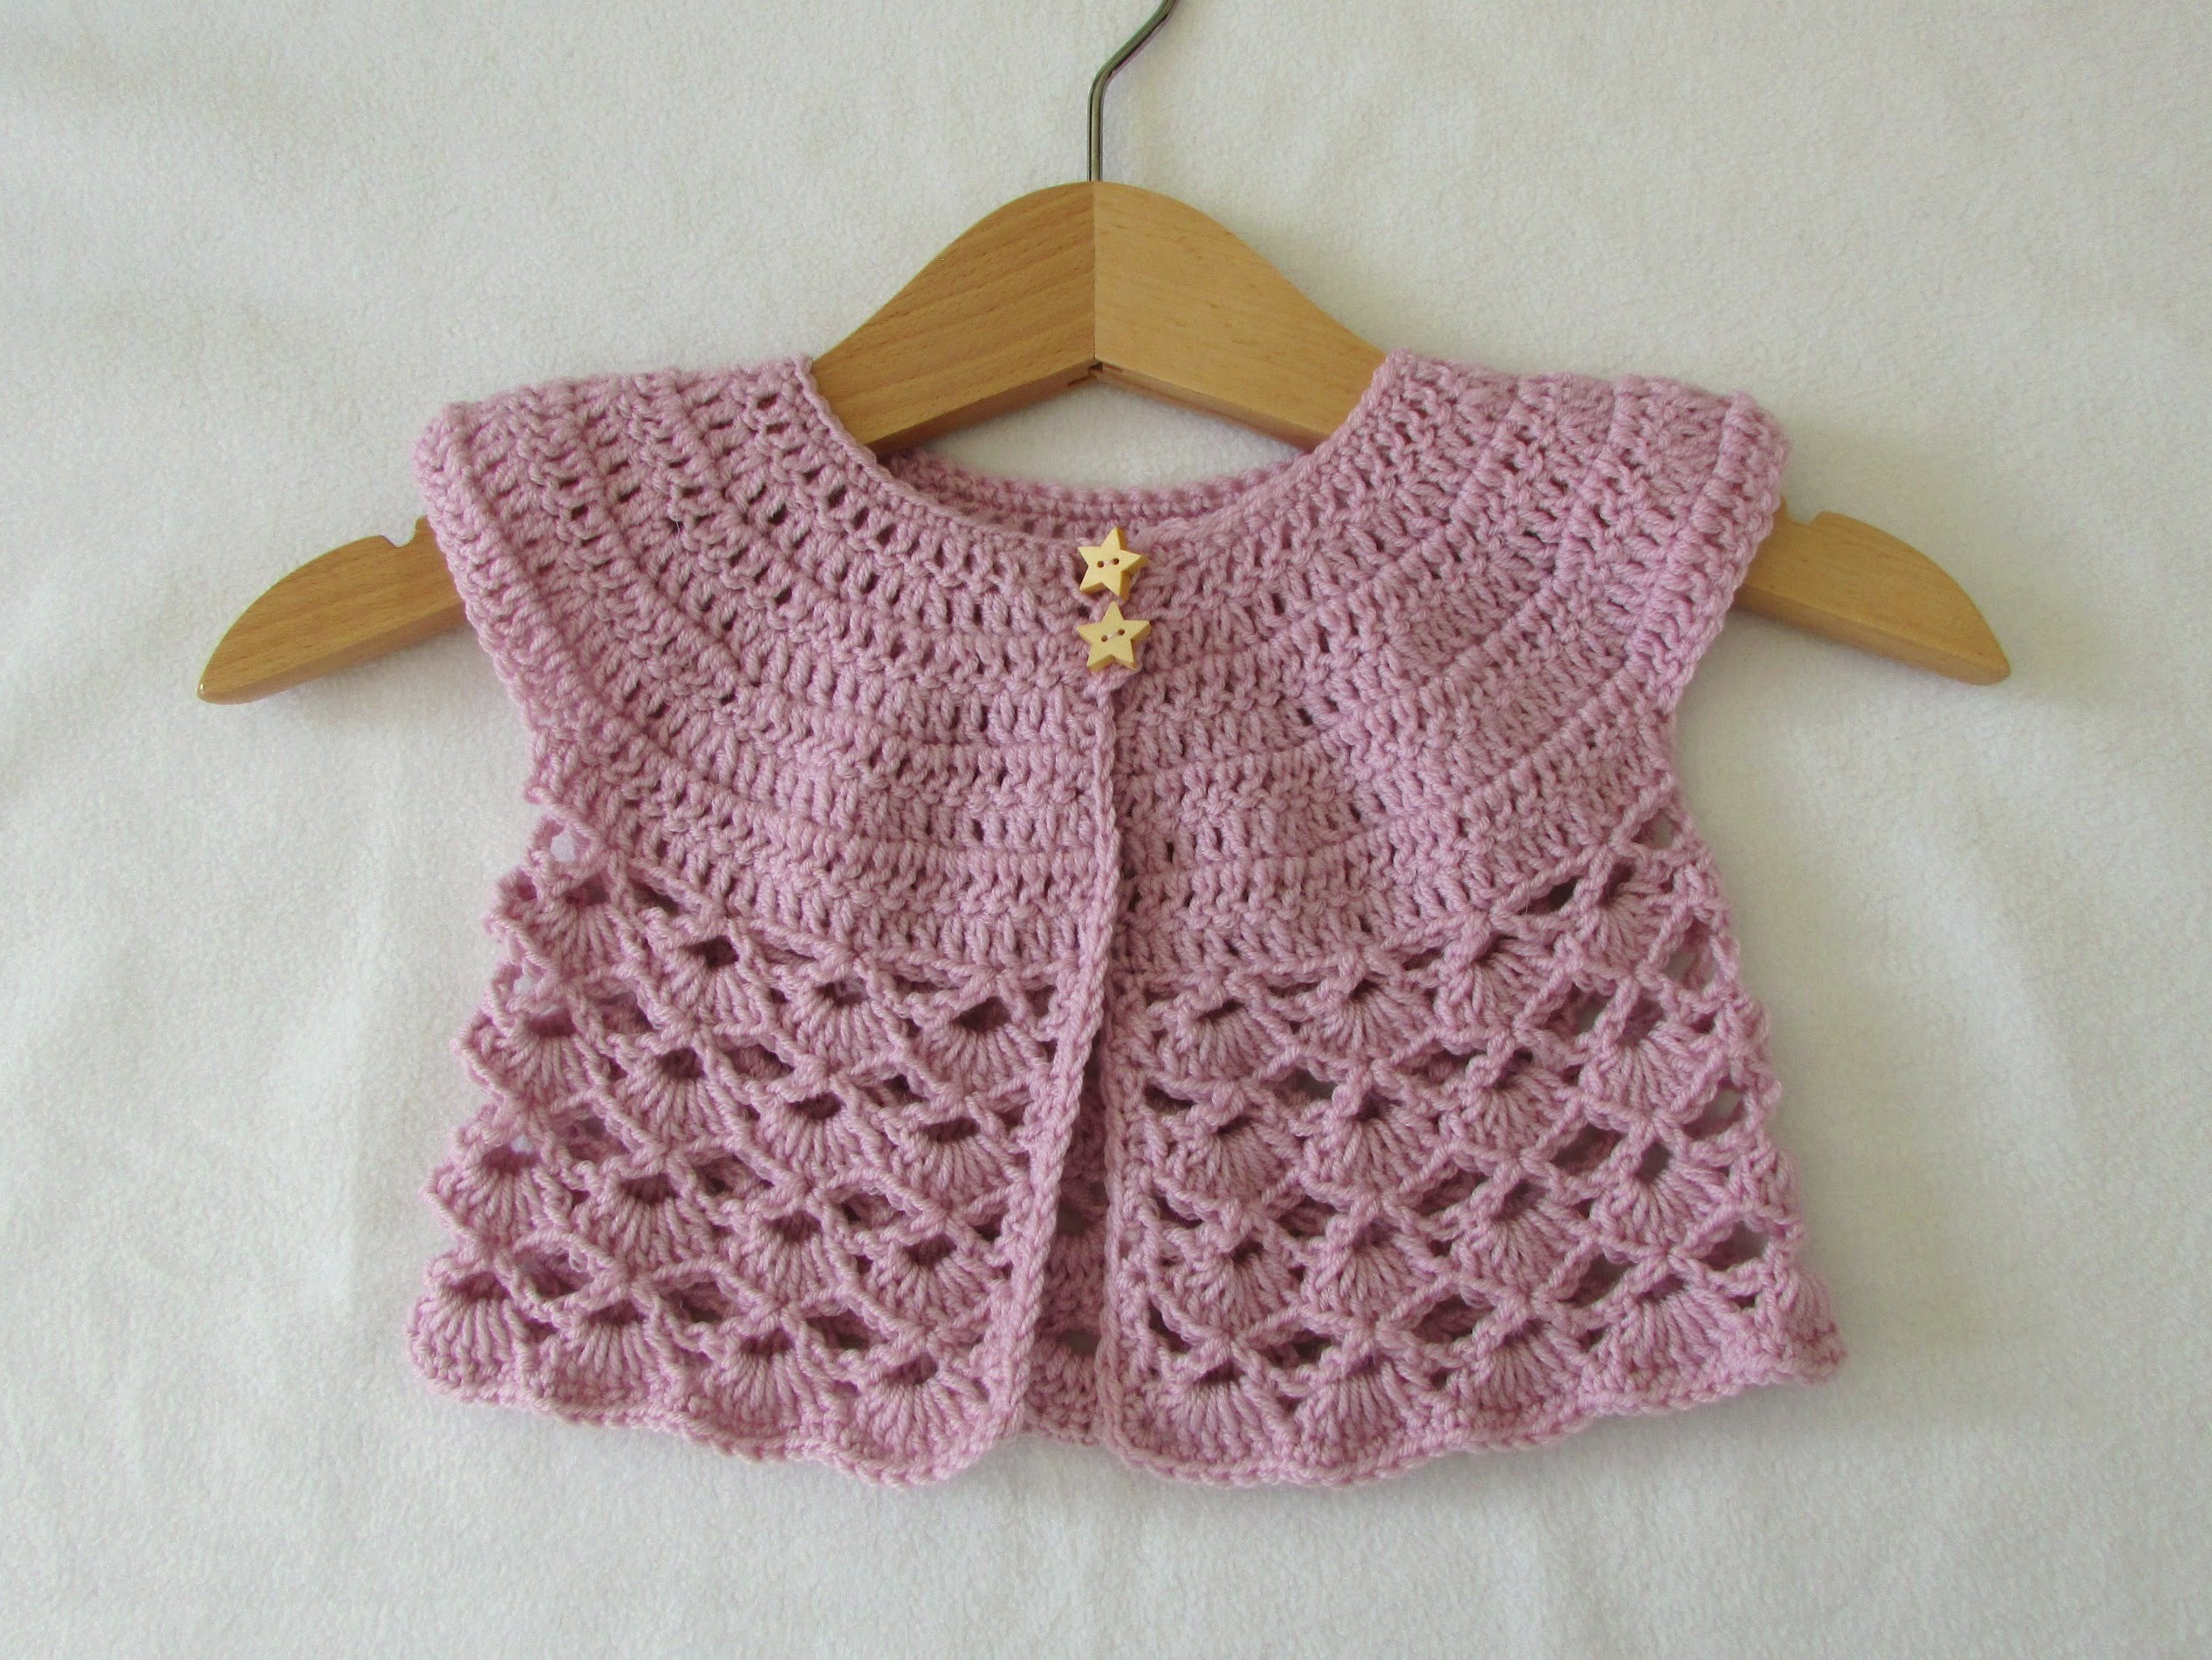 Easy Baby Sweater Crochet Pattern Beautiful How to Crochet Baby Sweater Cottageartcreations Of Great 47 Photos Easy Baby Sweater Crochet Pattern